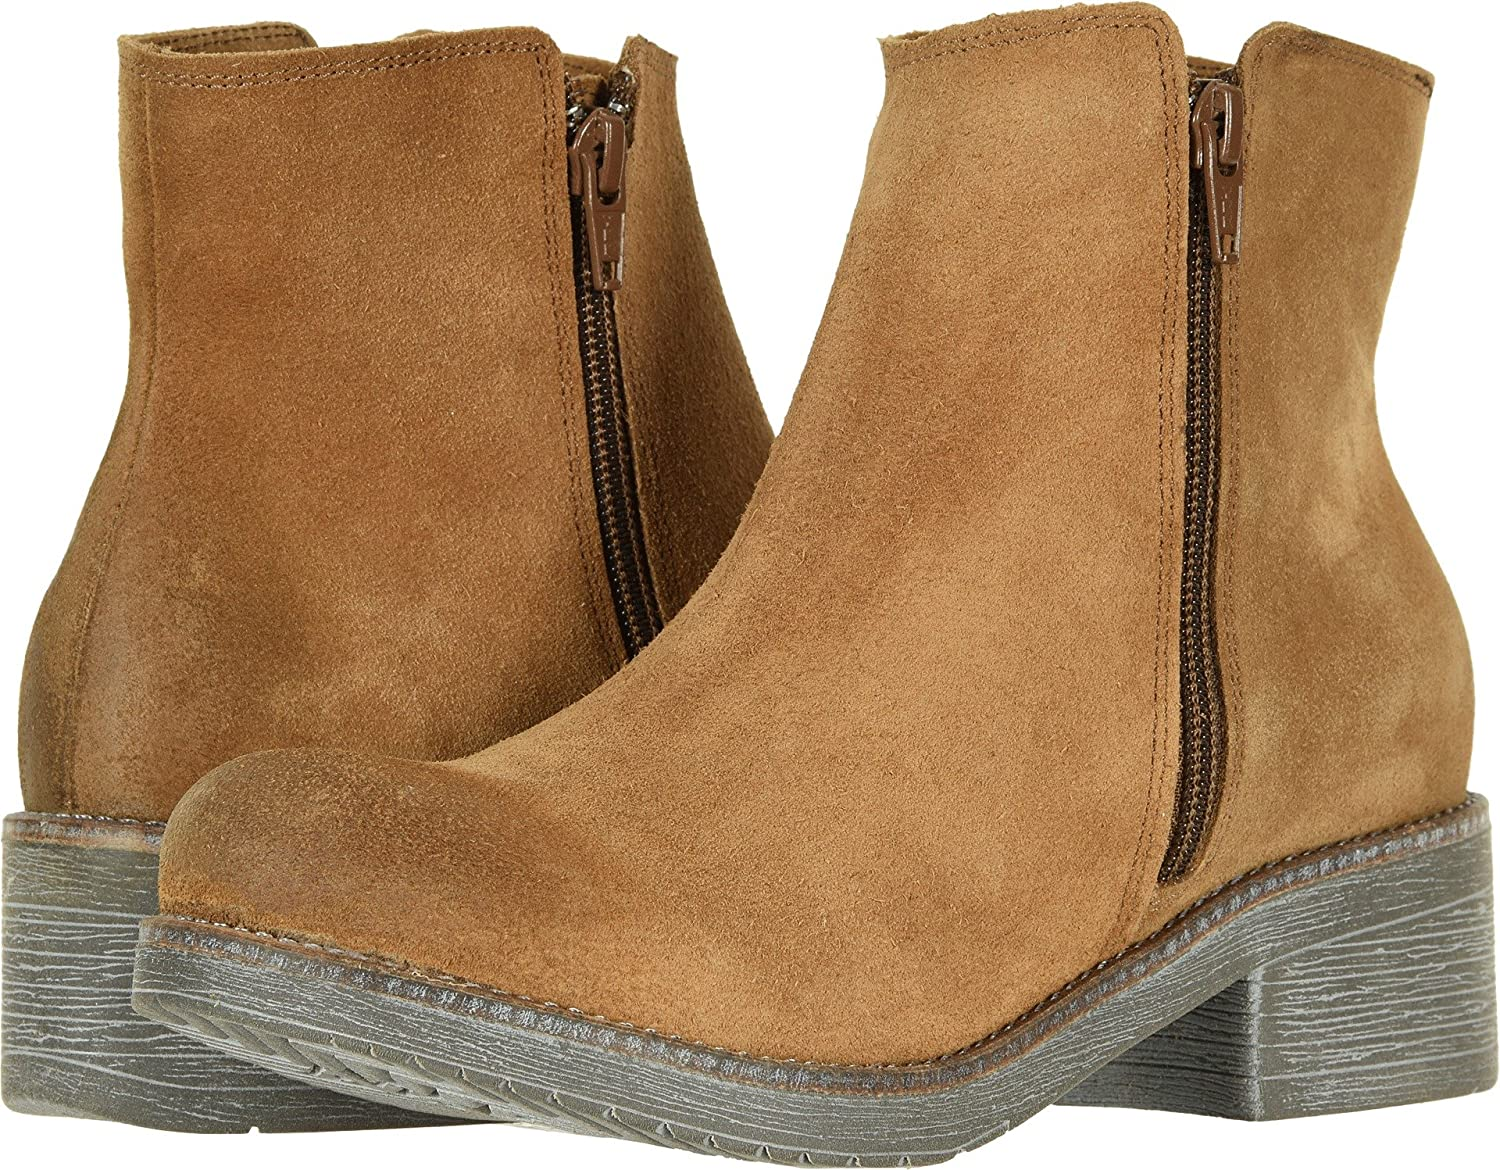 NAOT Women's Wander Ankle Booties B07932R914 37 M EU|Brushed Desert Suede